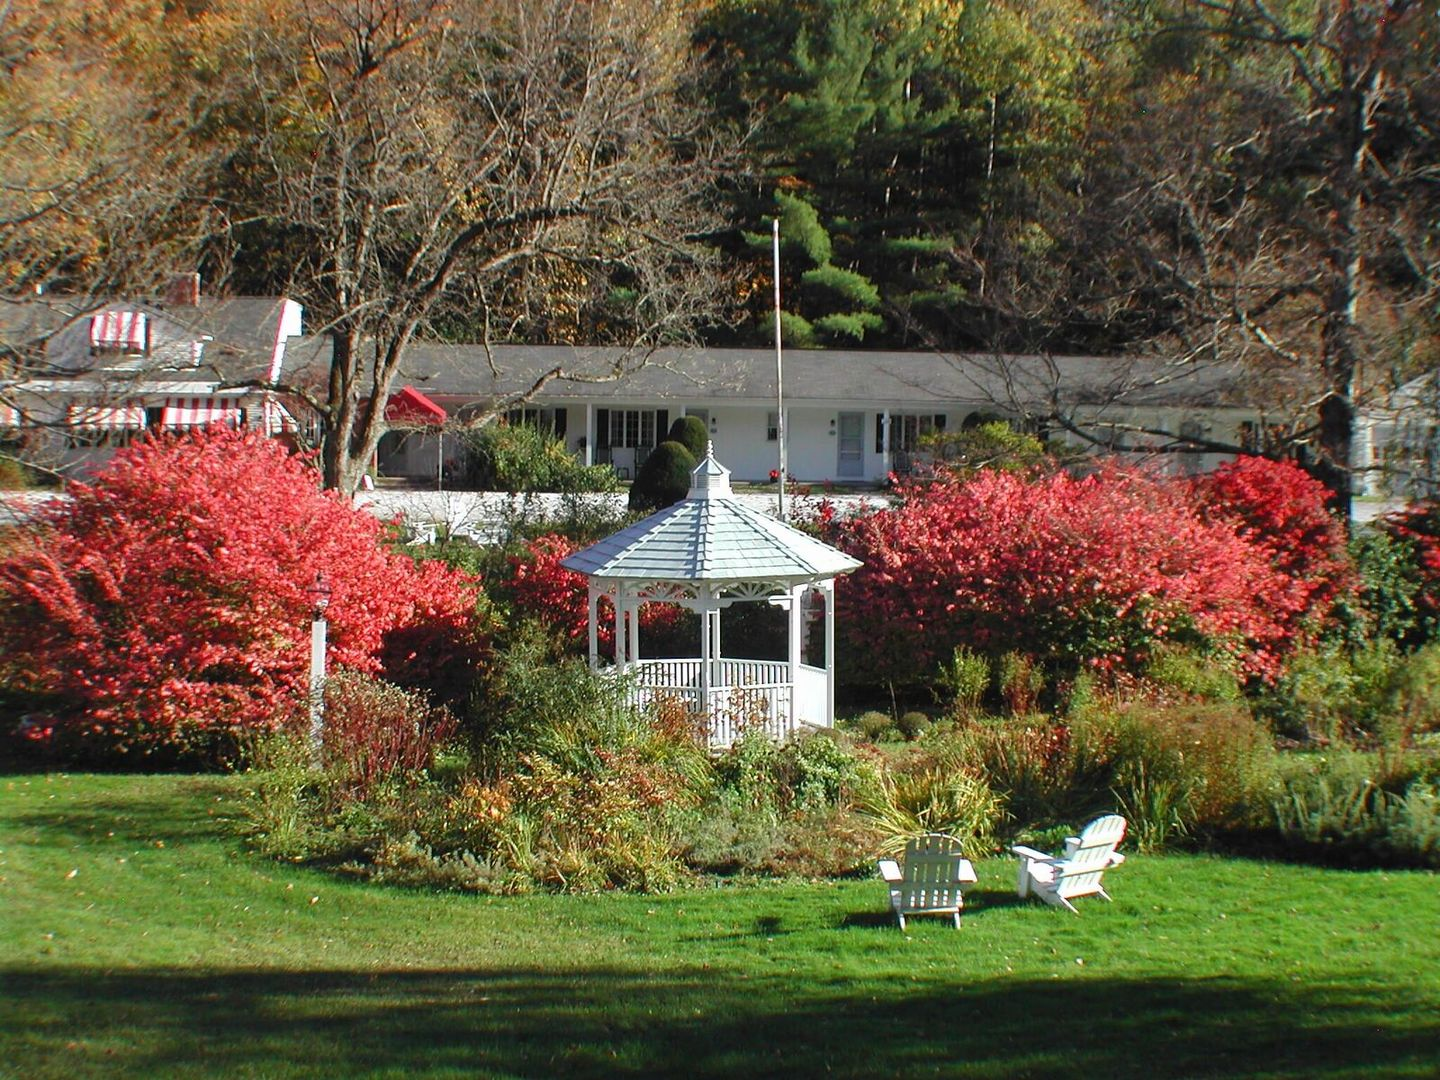 A close up of a flower garden in front of a house at 1896 House Inn and Country Lodgings.